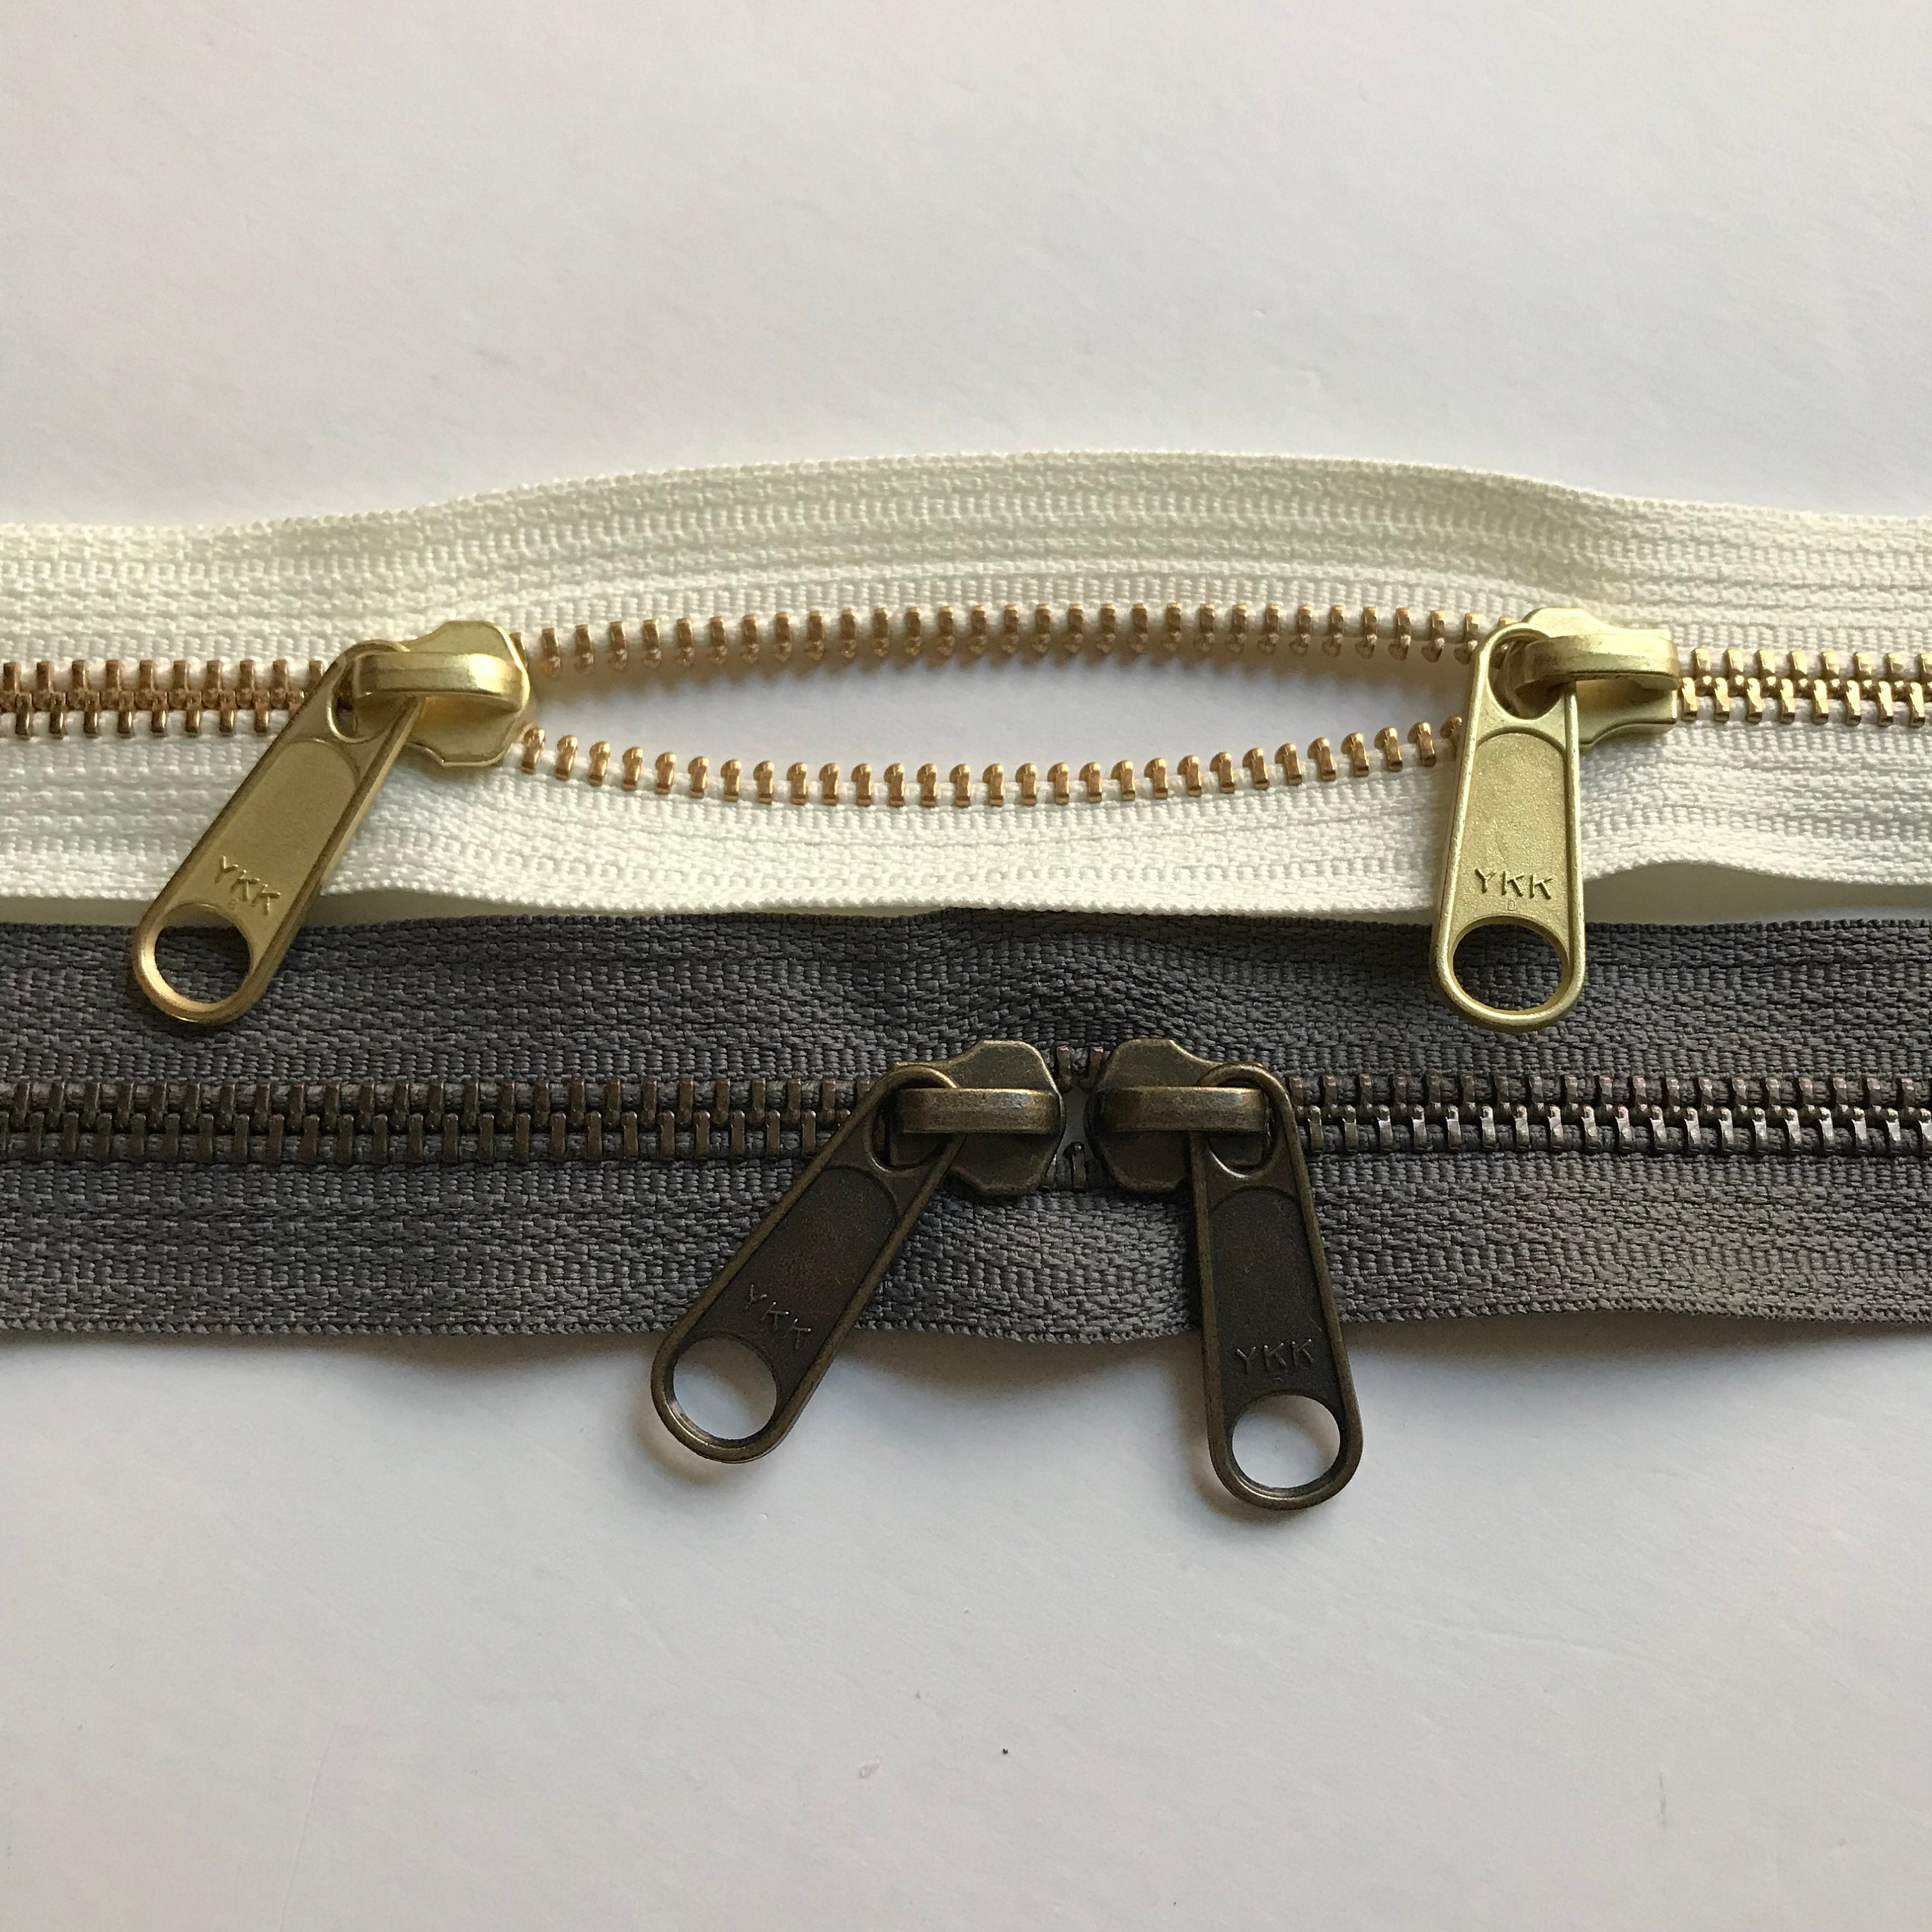 Pack of 10 Antique Gold Zippers by YKK 6 inch no 5 White Zippers for Handbags